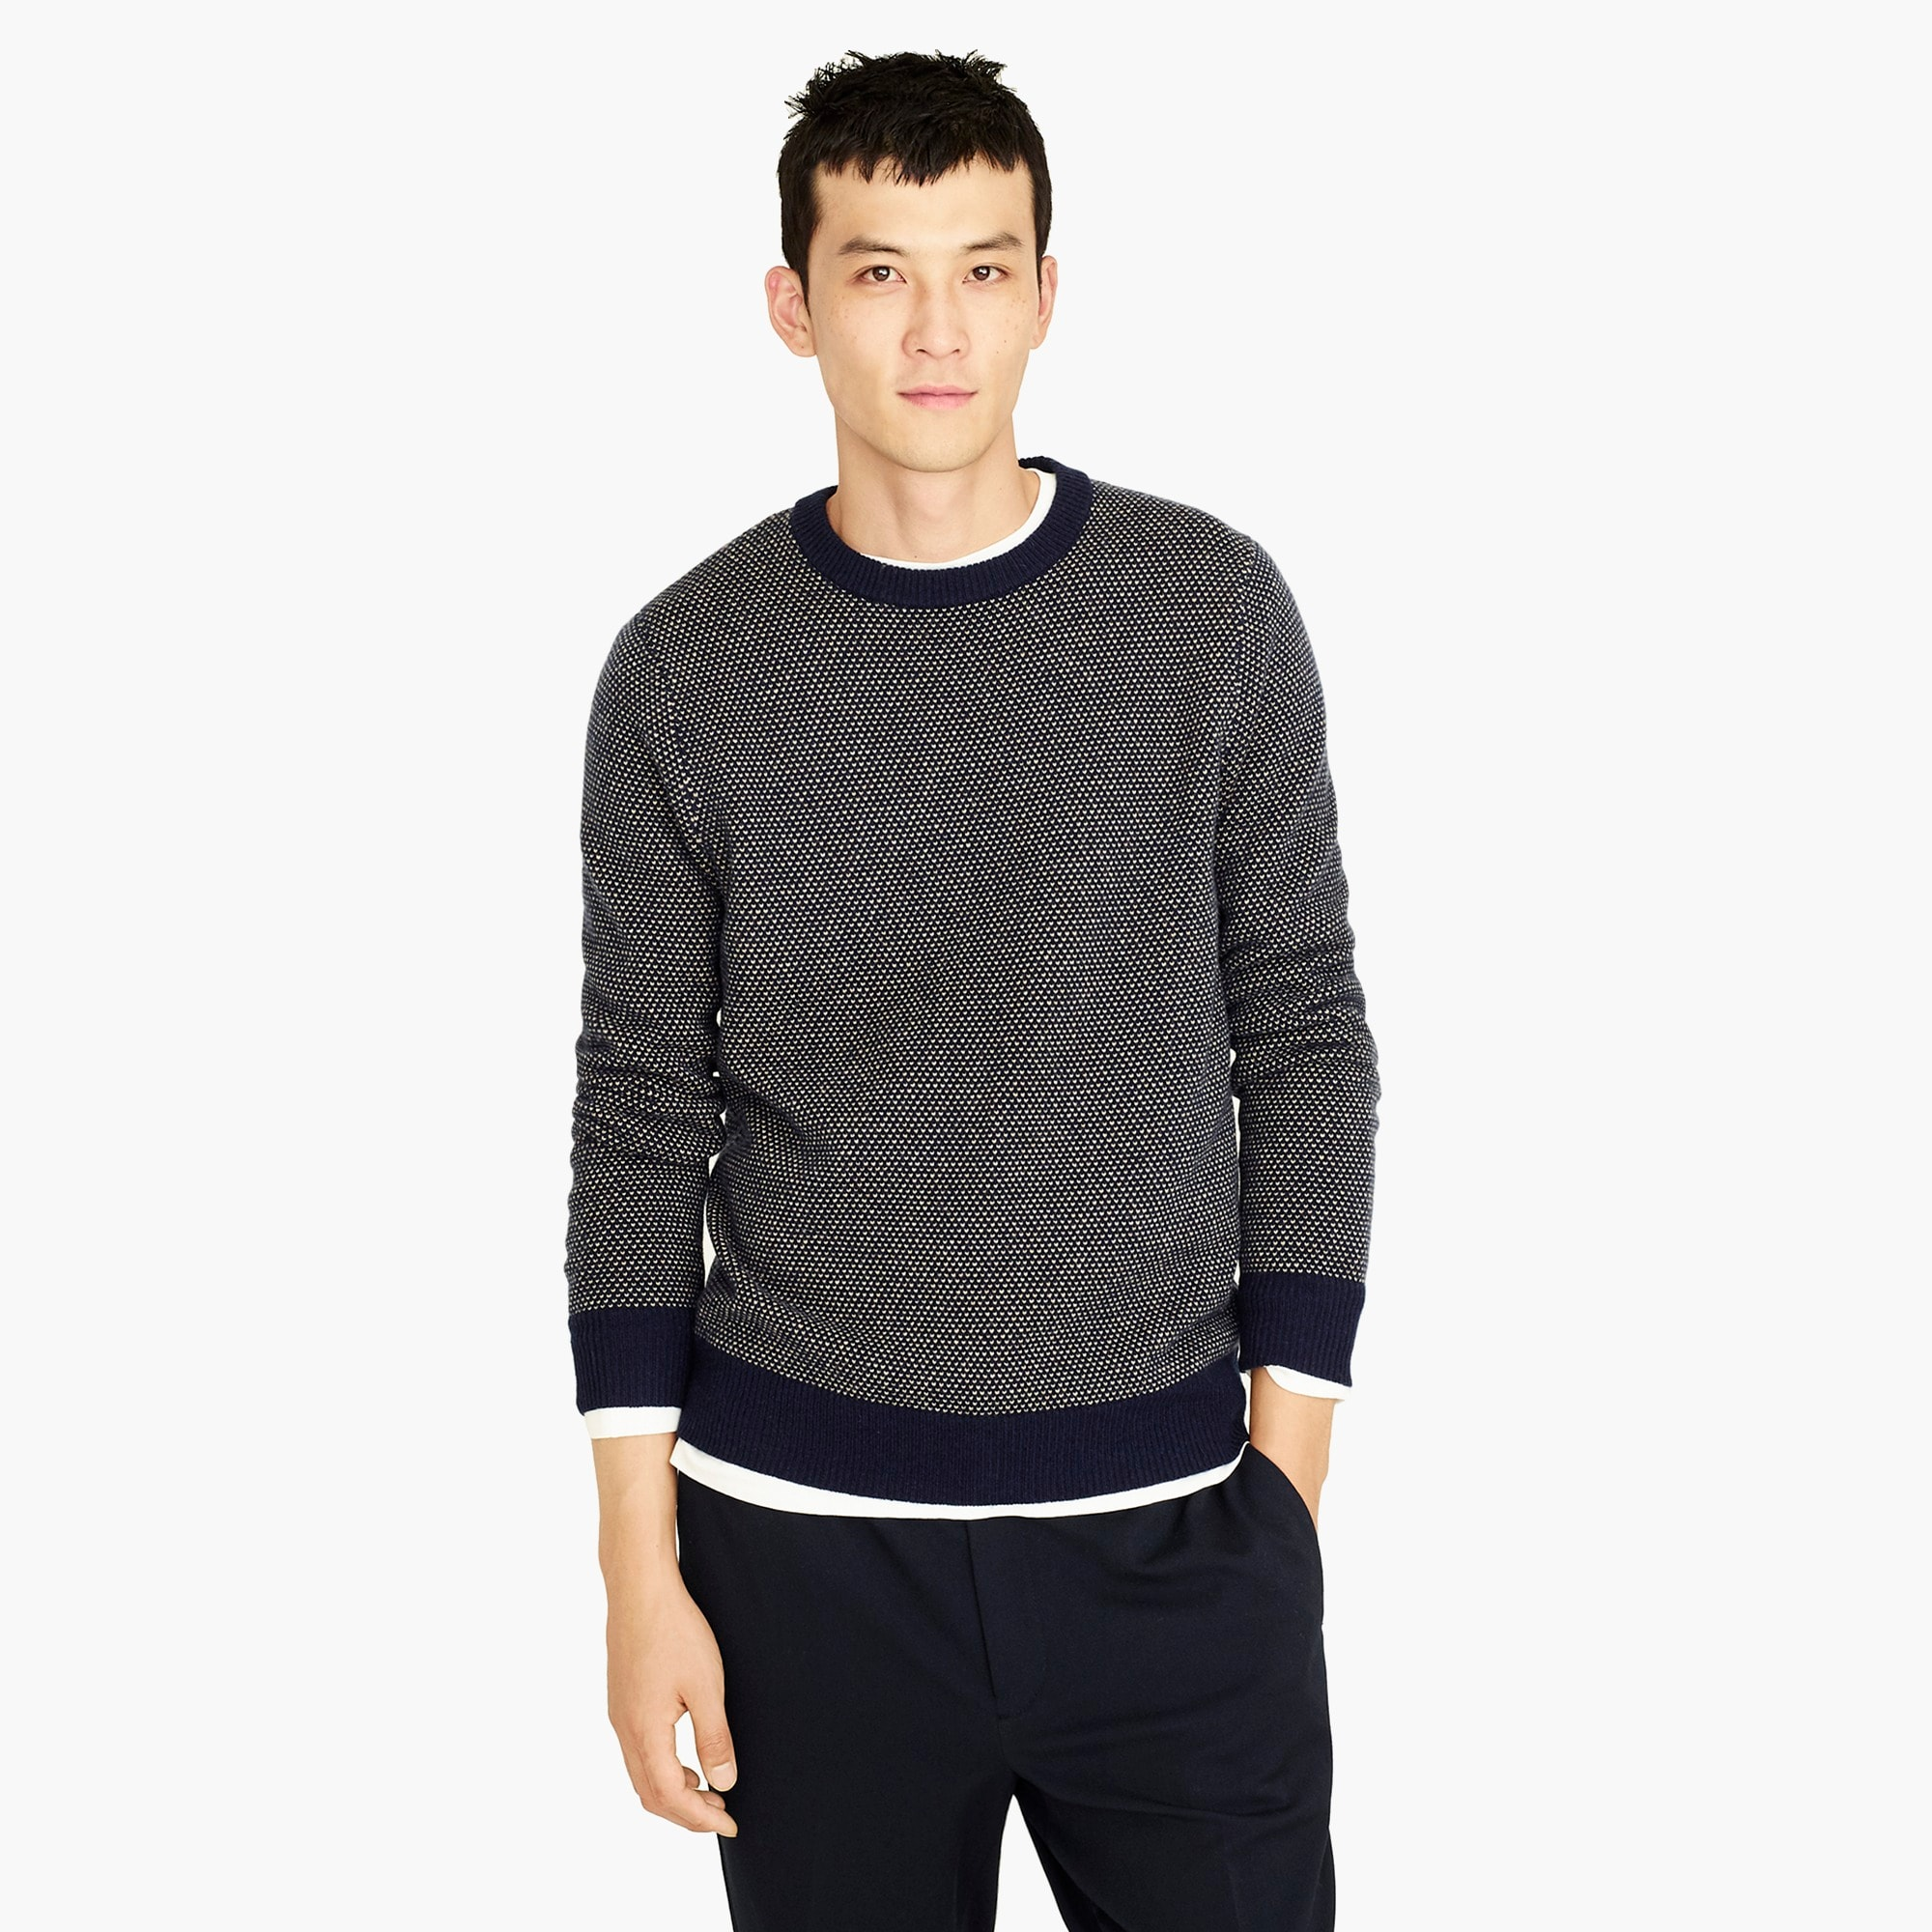 mens Rugged merino wool bird's-eye crewneck sweater in navy